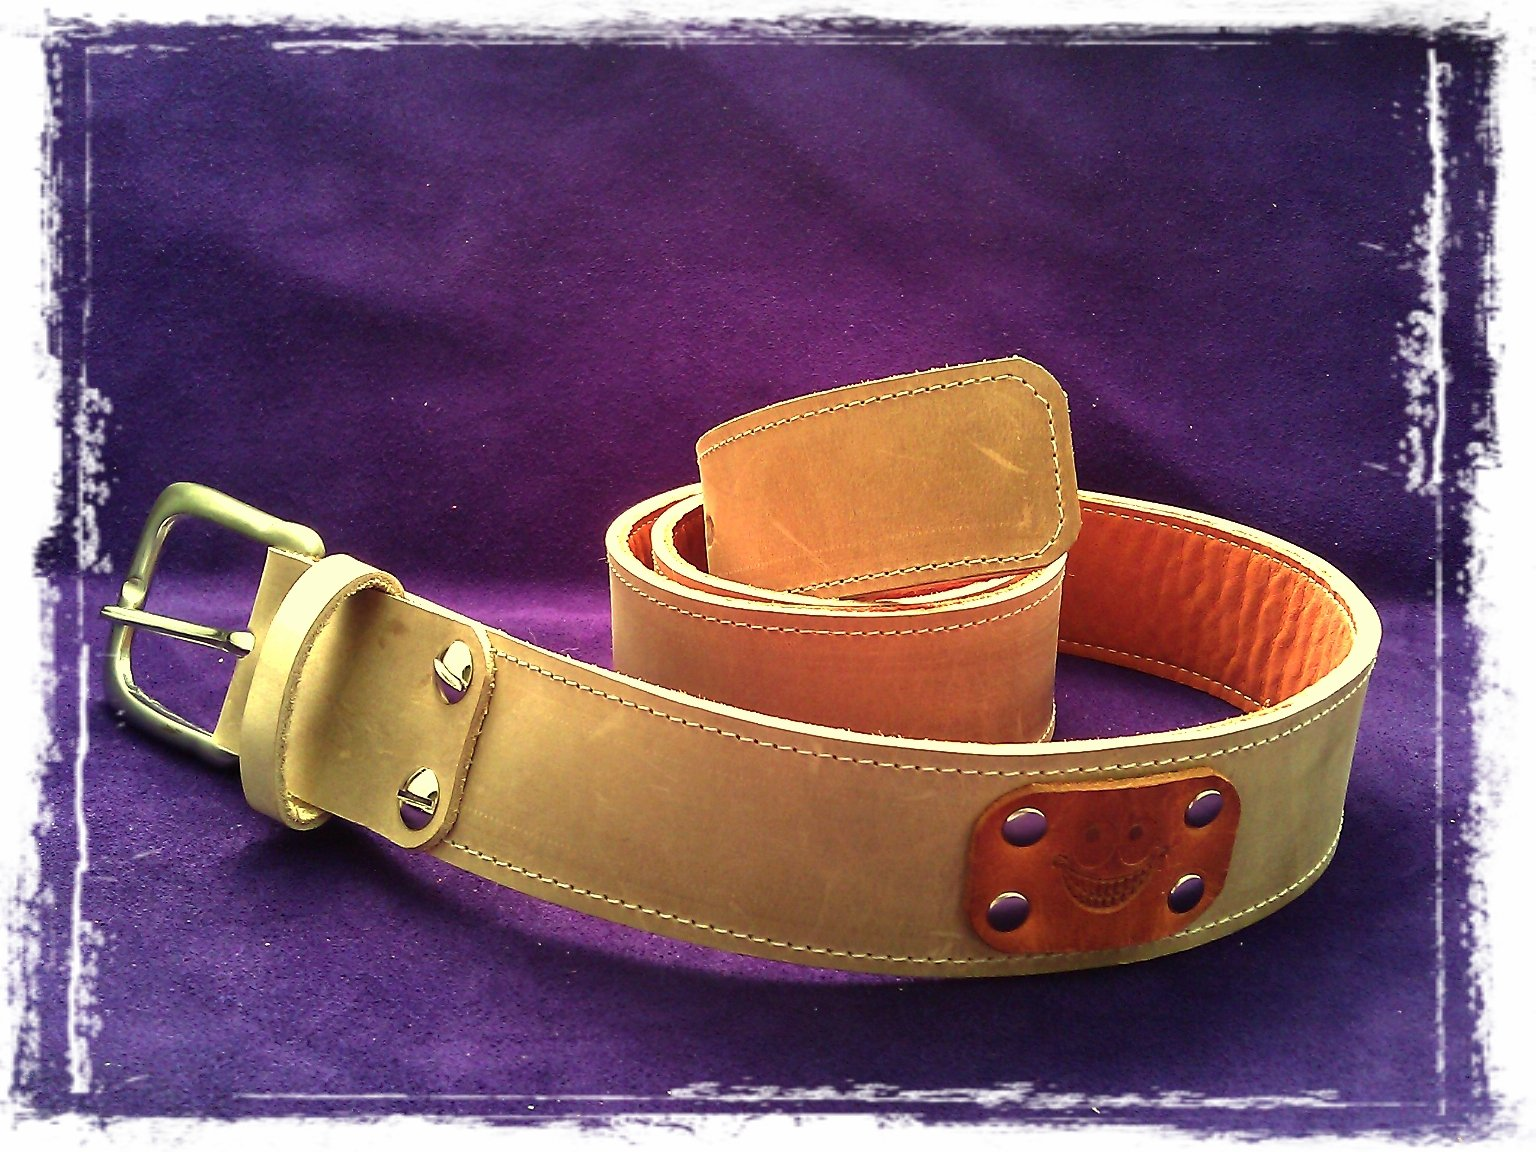 handmade leather belt you can wear in 2 colors thecrazysmile